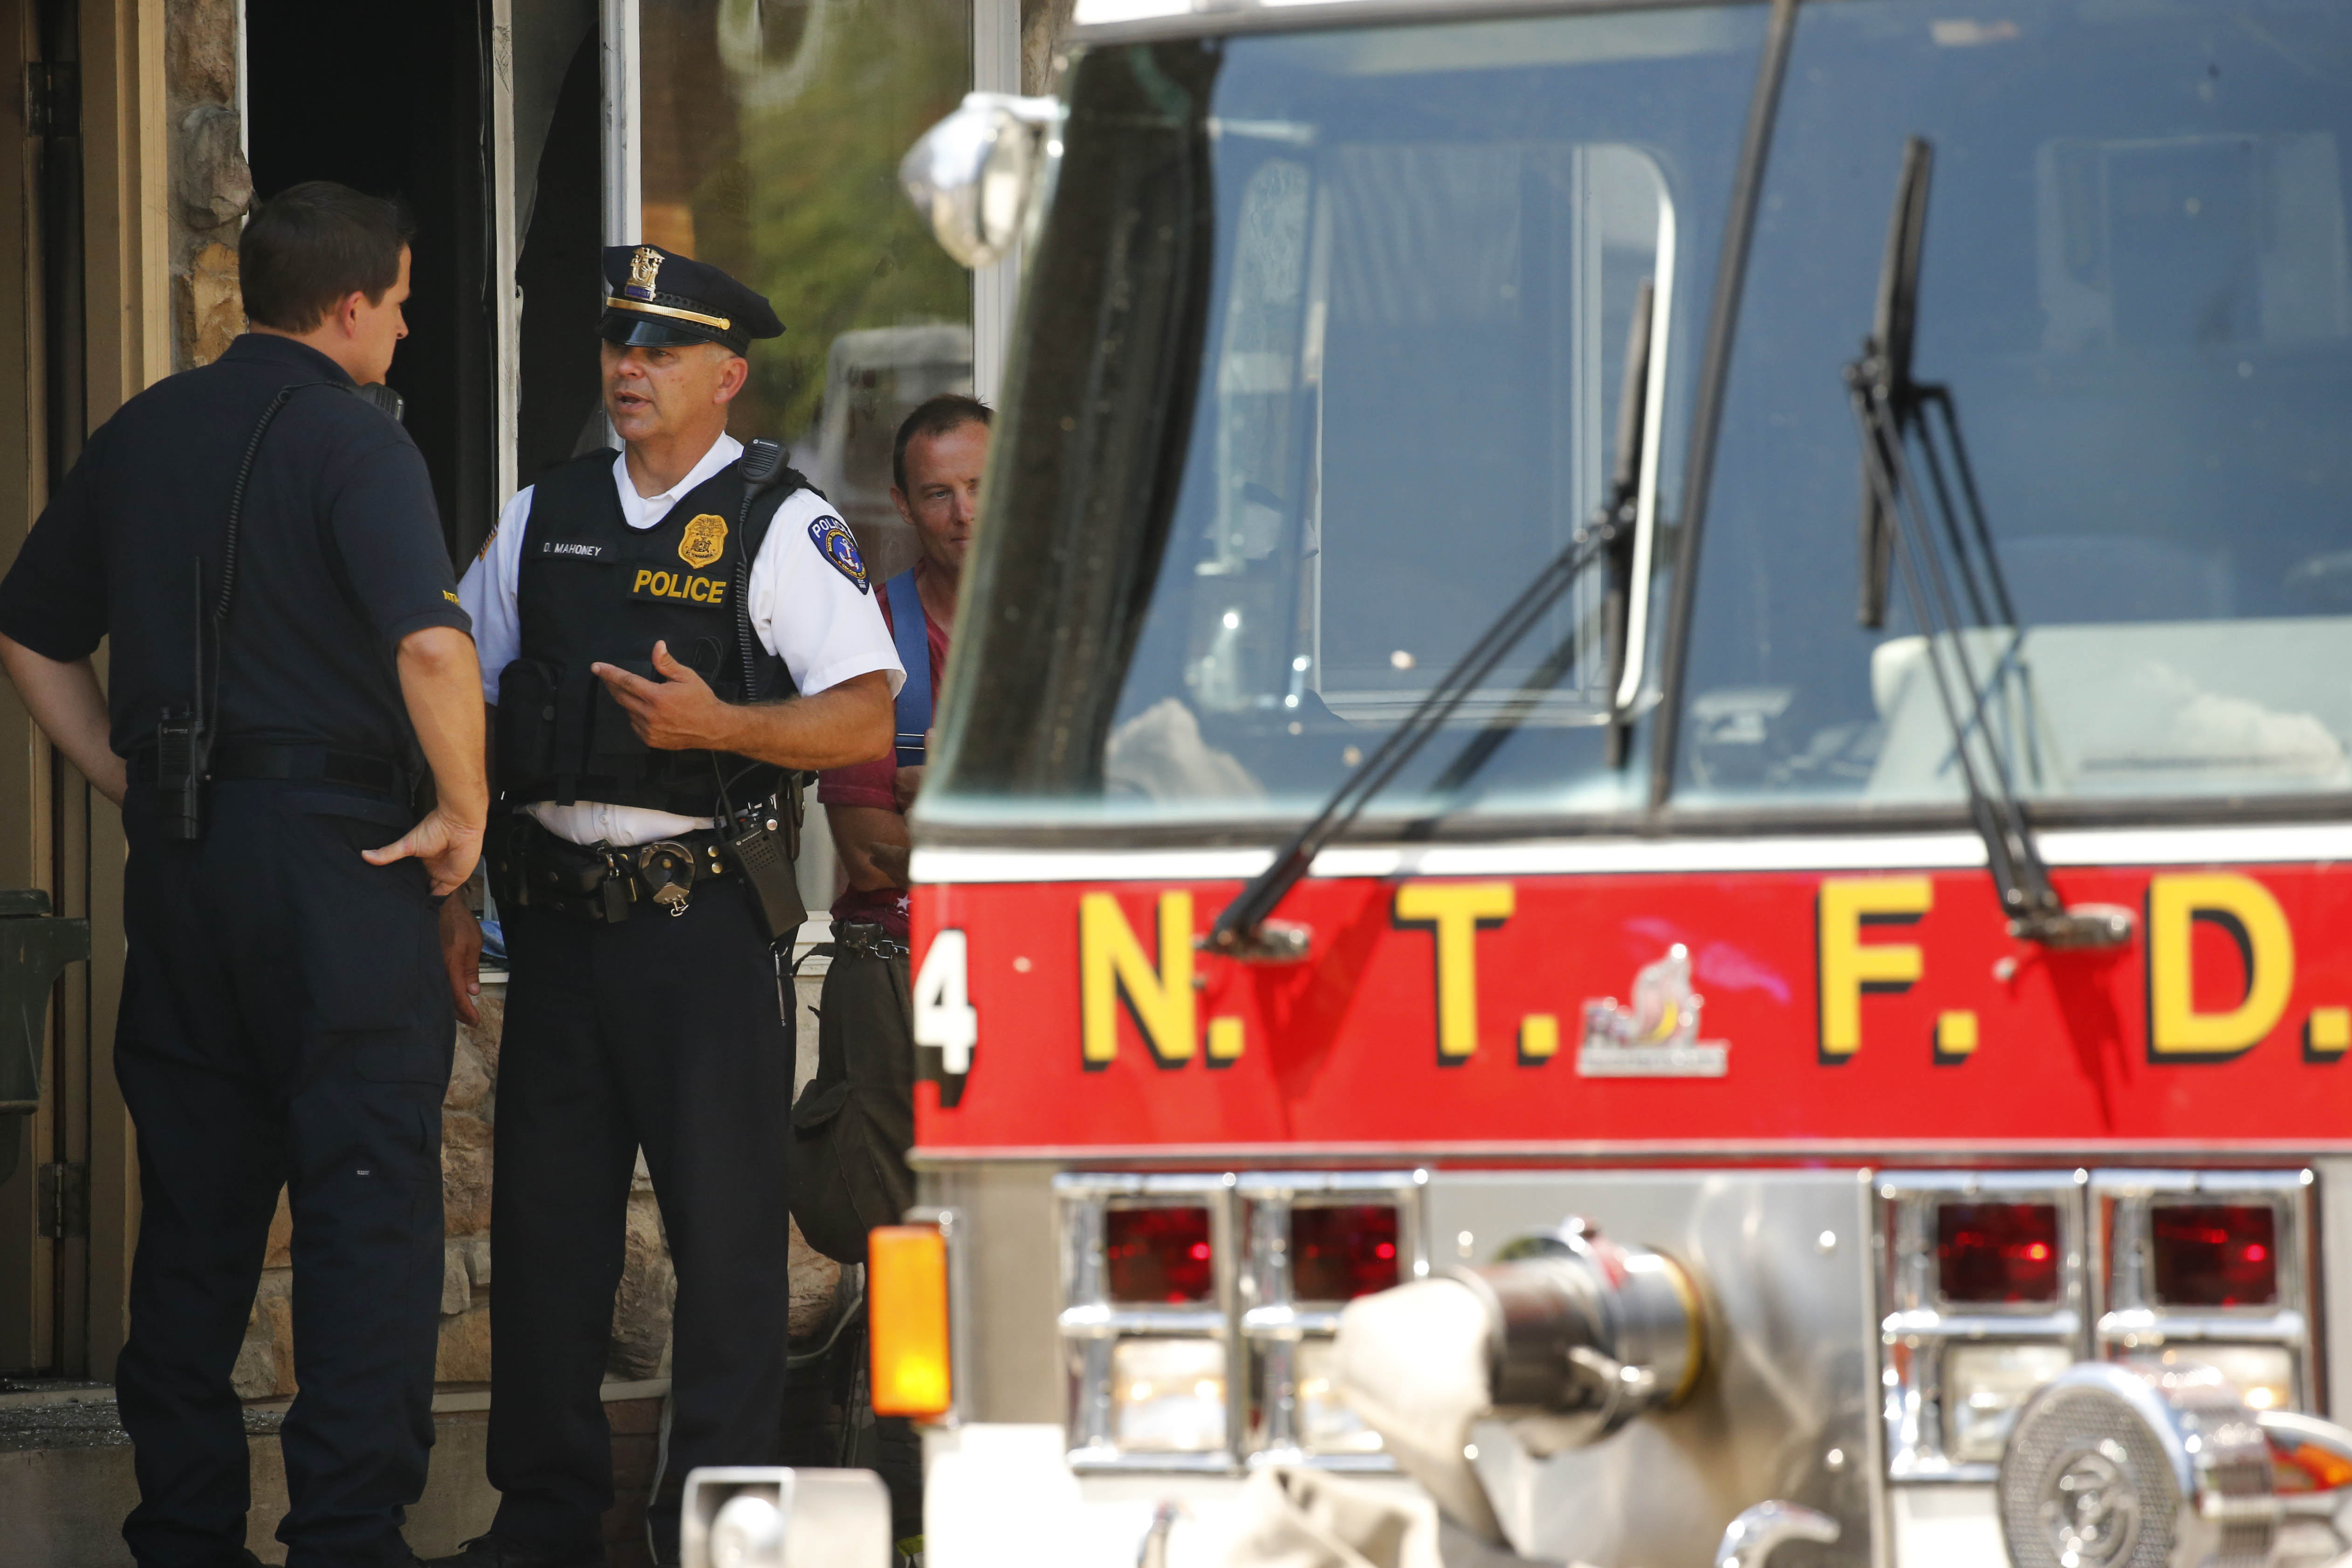 North Tonawanda fire and police officials investigate at the scene of a fire on Wednesday, Aug. 3, 2016.  (Photo by Derek Gee)